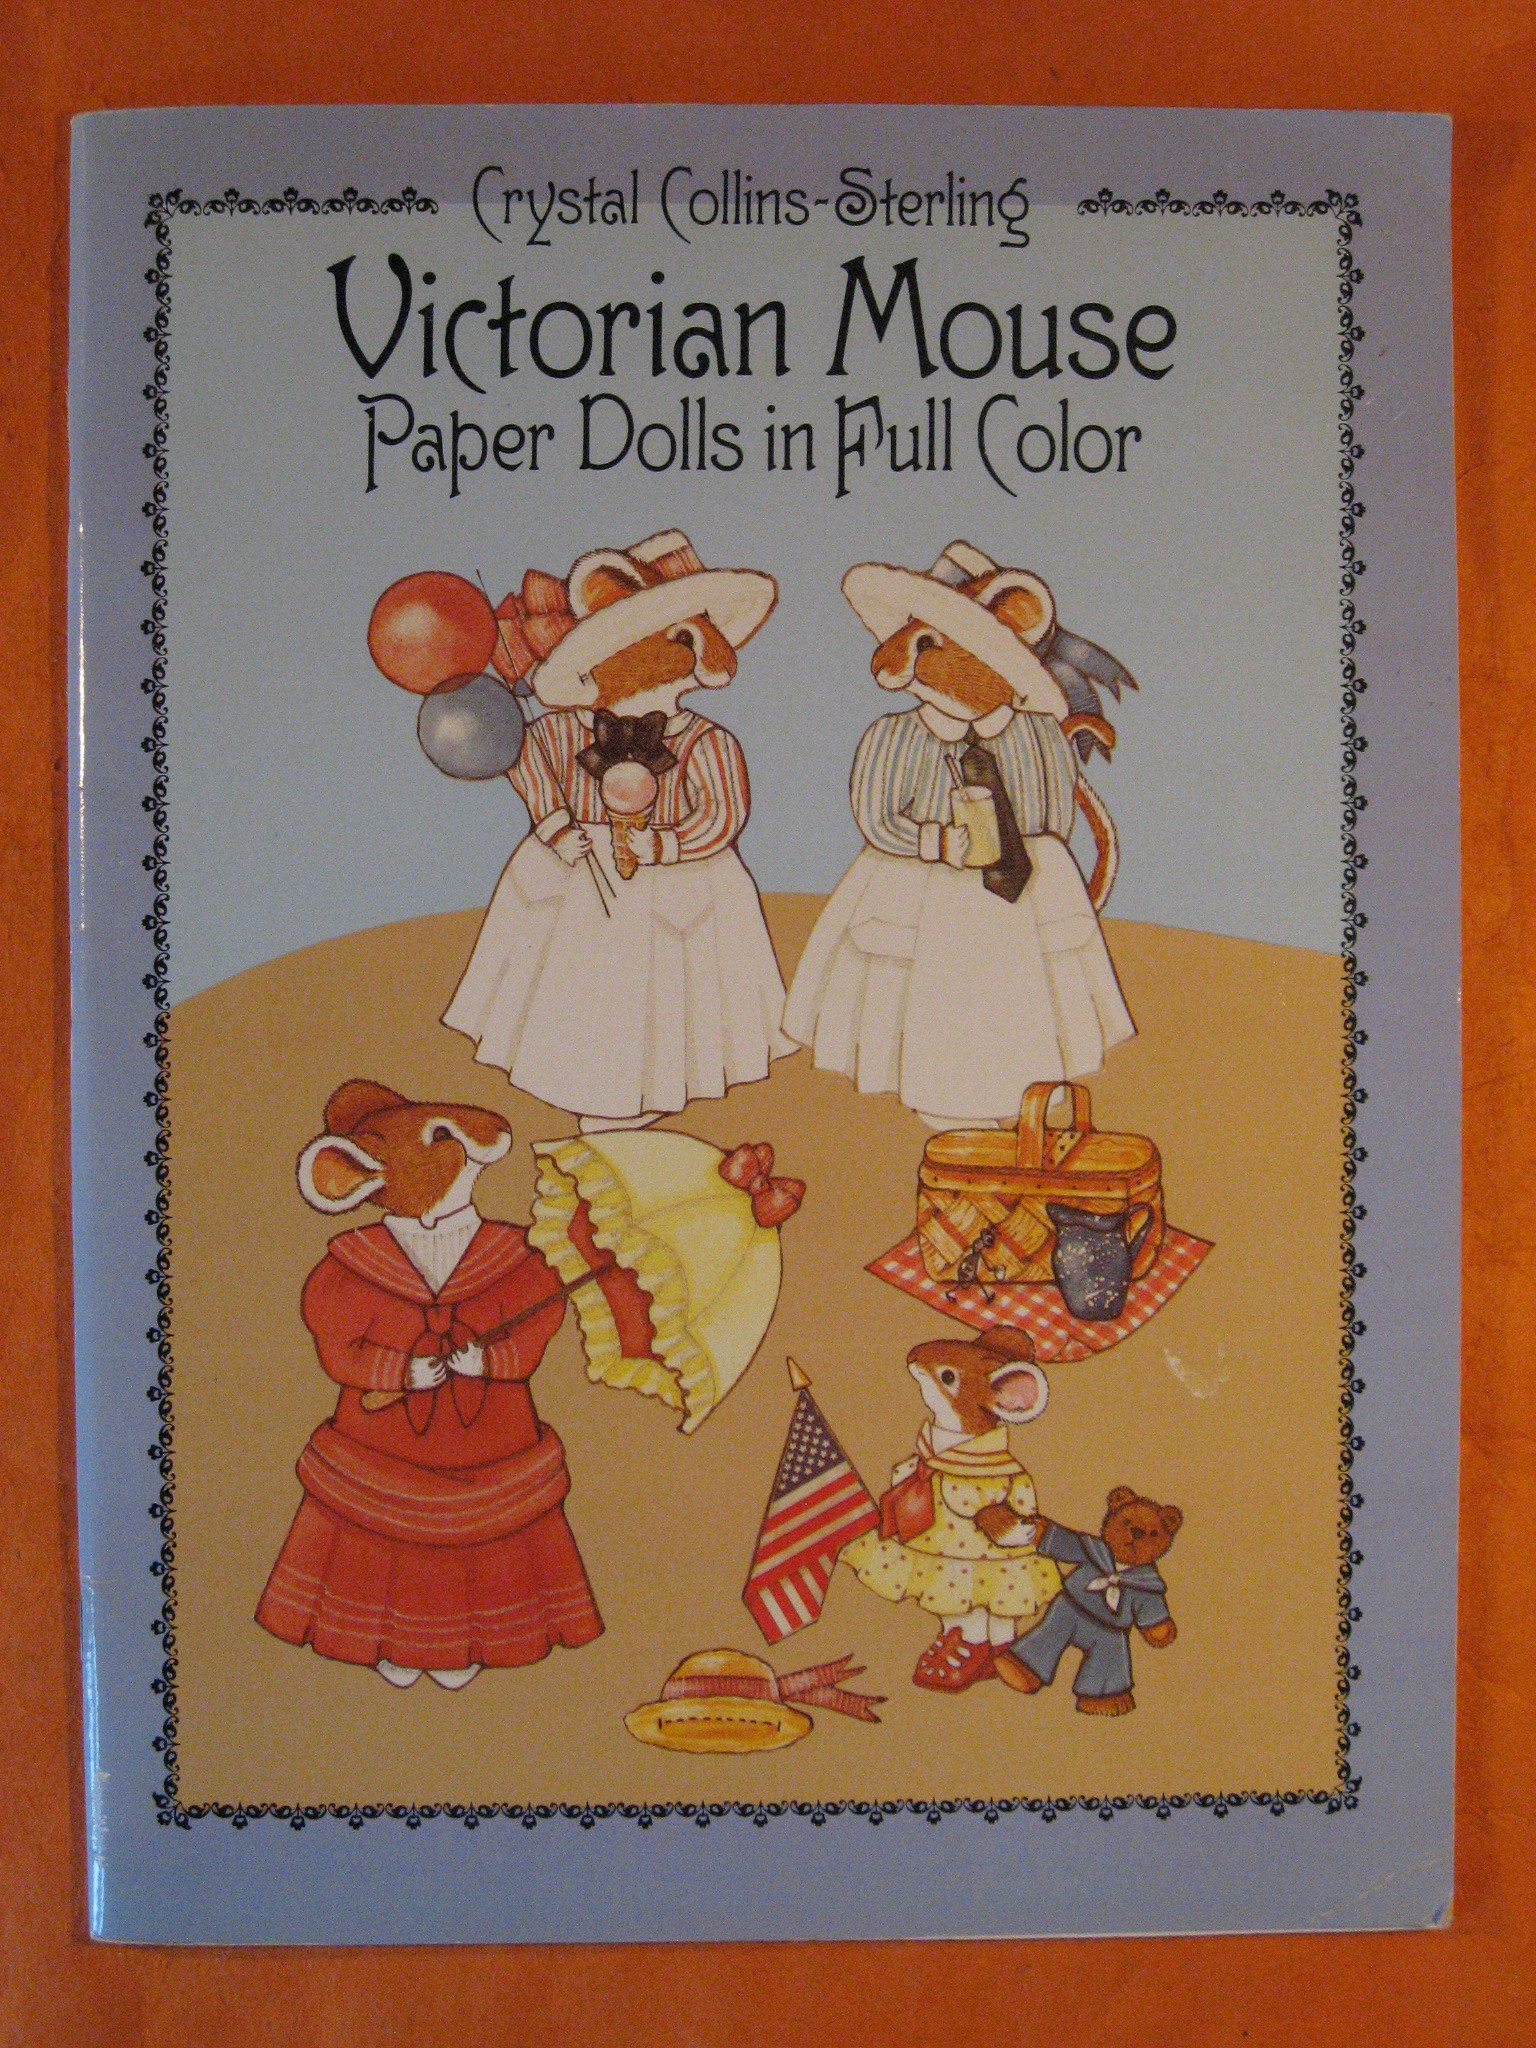 Victorian Mouse Paper Dolls in Full Color, Collins-Sterling, Crystal